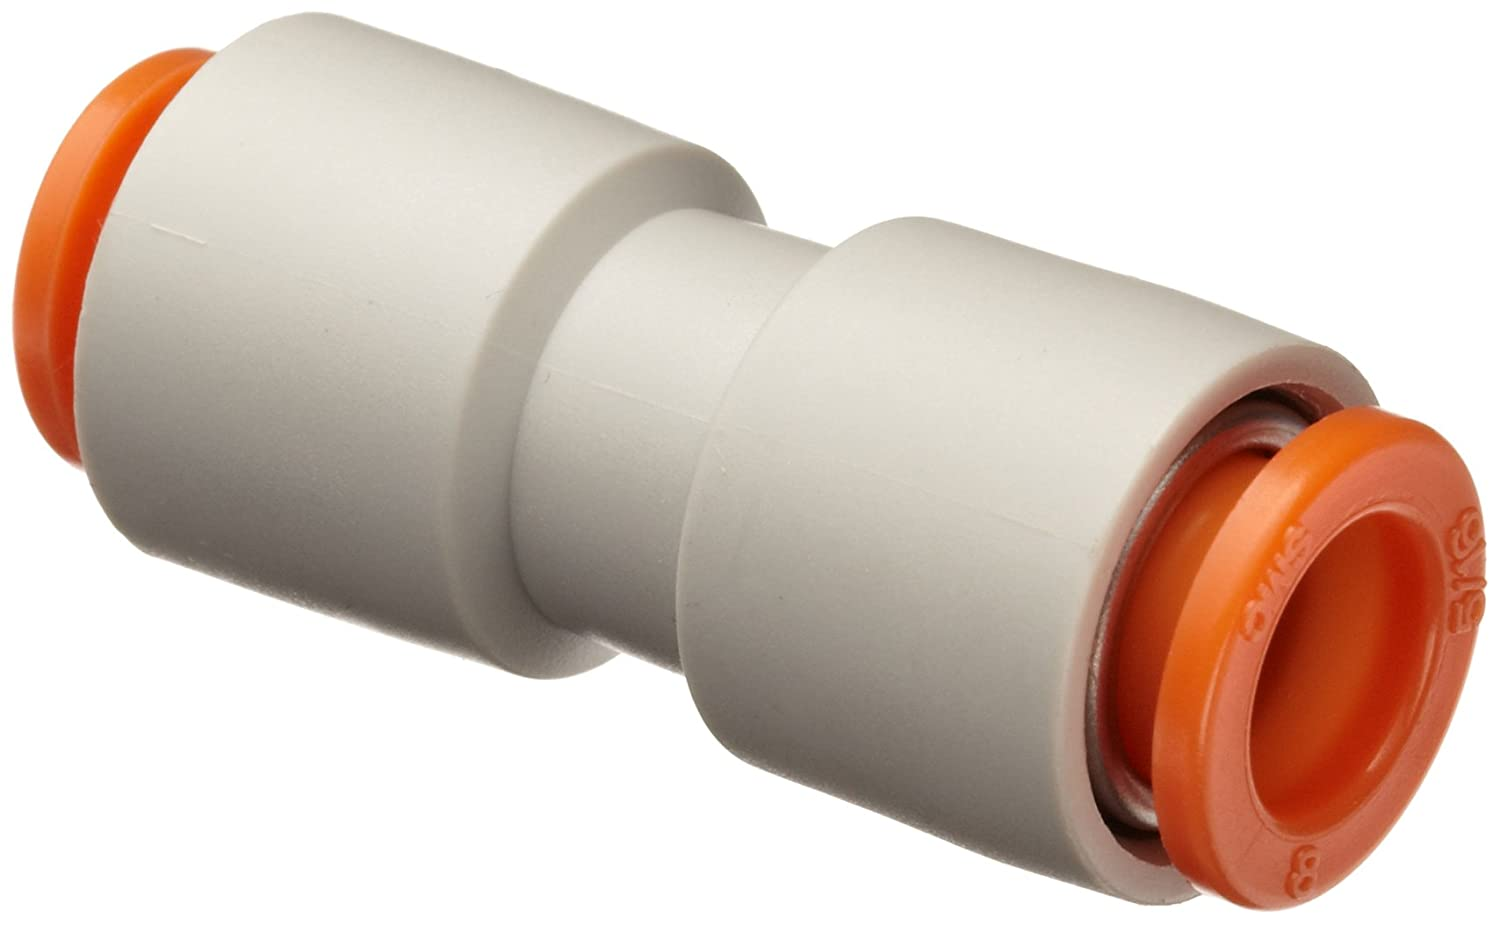 SMC KQ2H07-09A PBT Push-to-Connect Tube Fitting, Reducing Coupler, 1/4